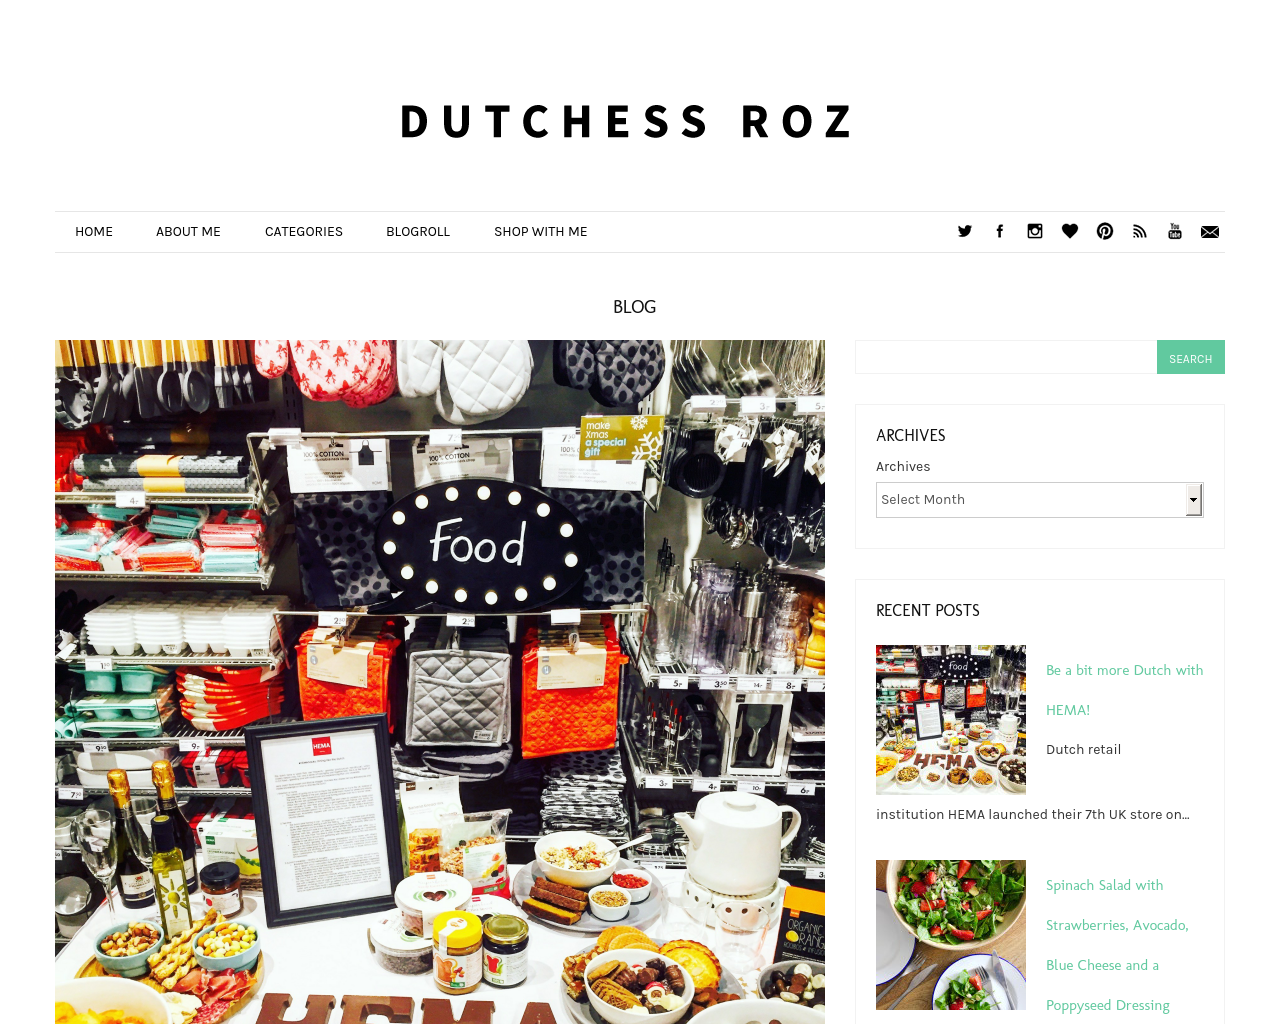 Dutchess-Roz-Advertising-Reviews-Pricing